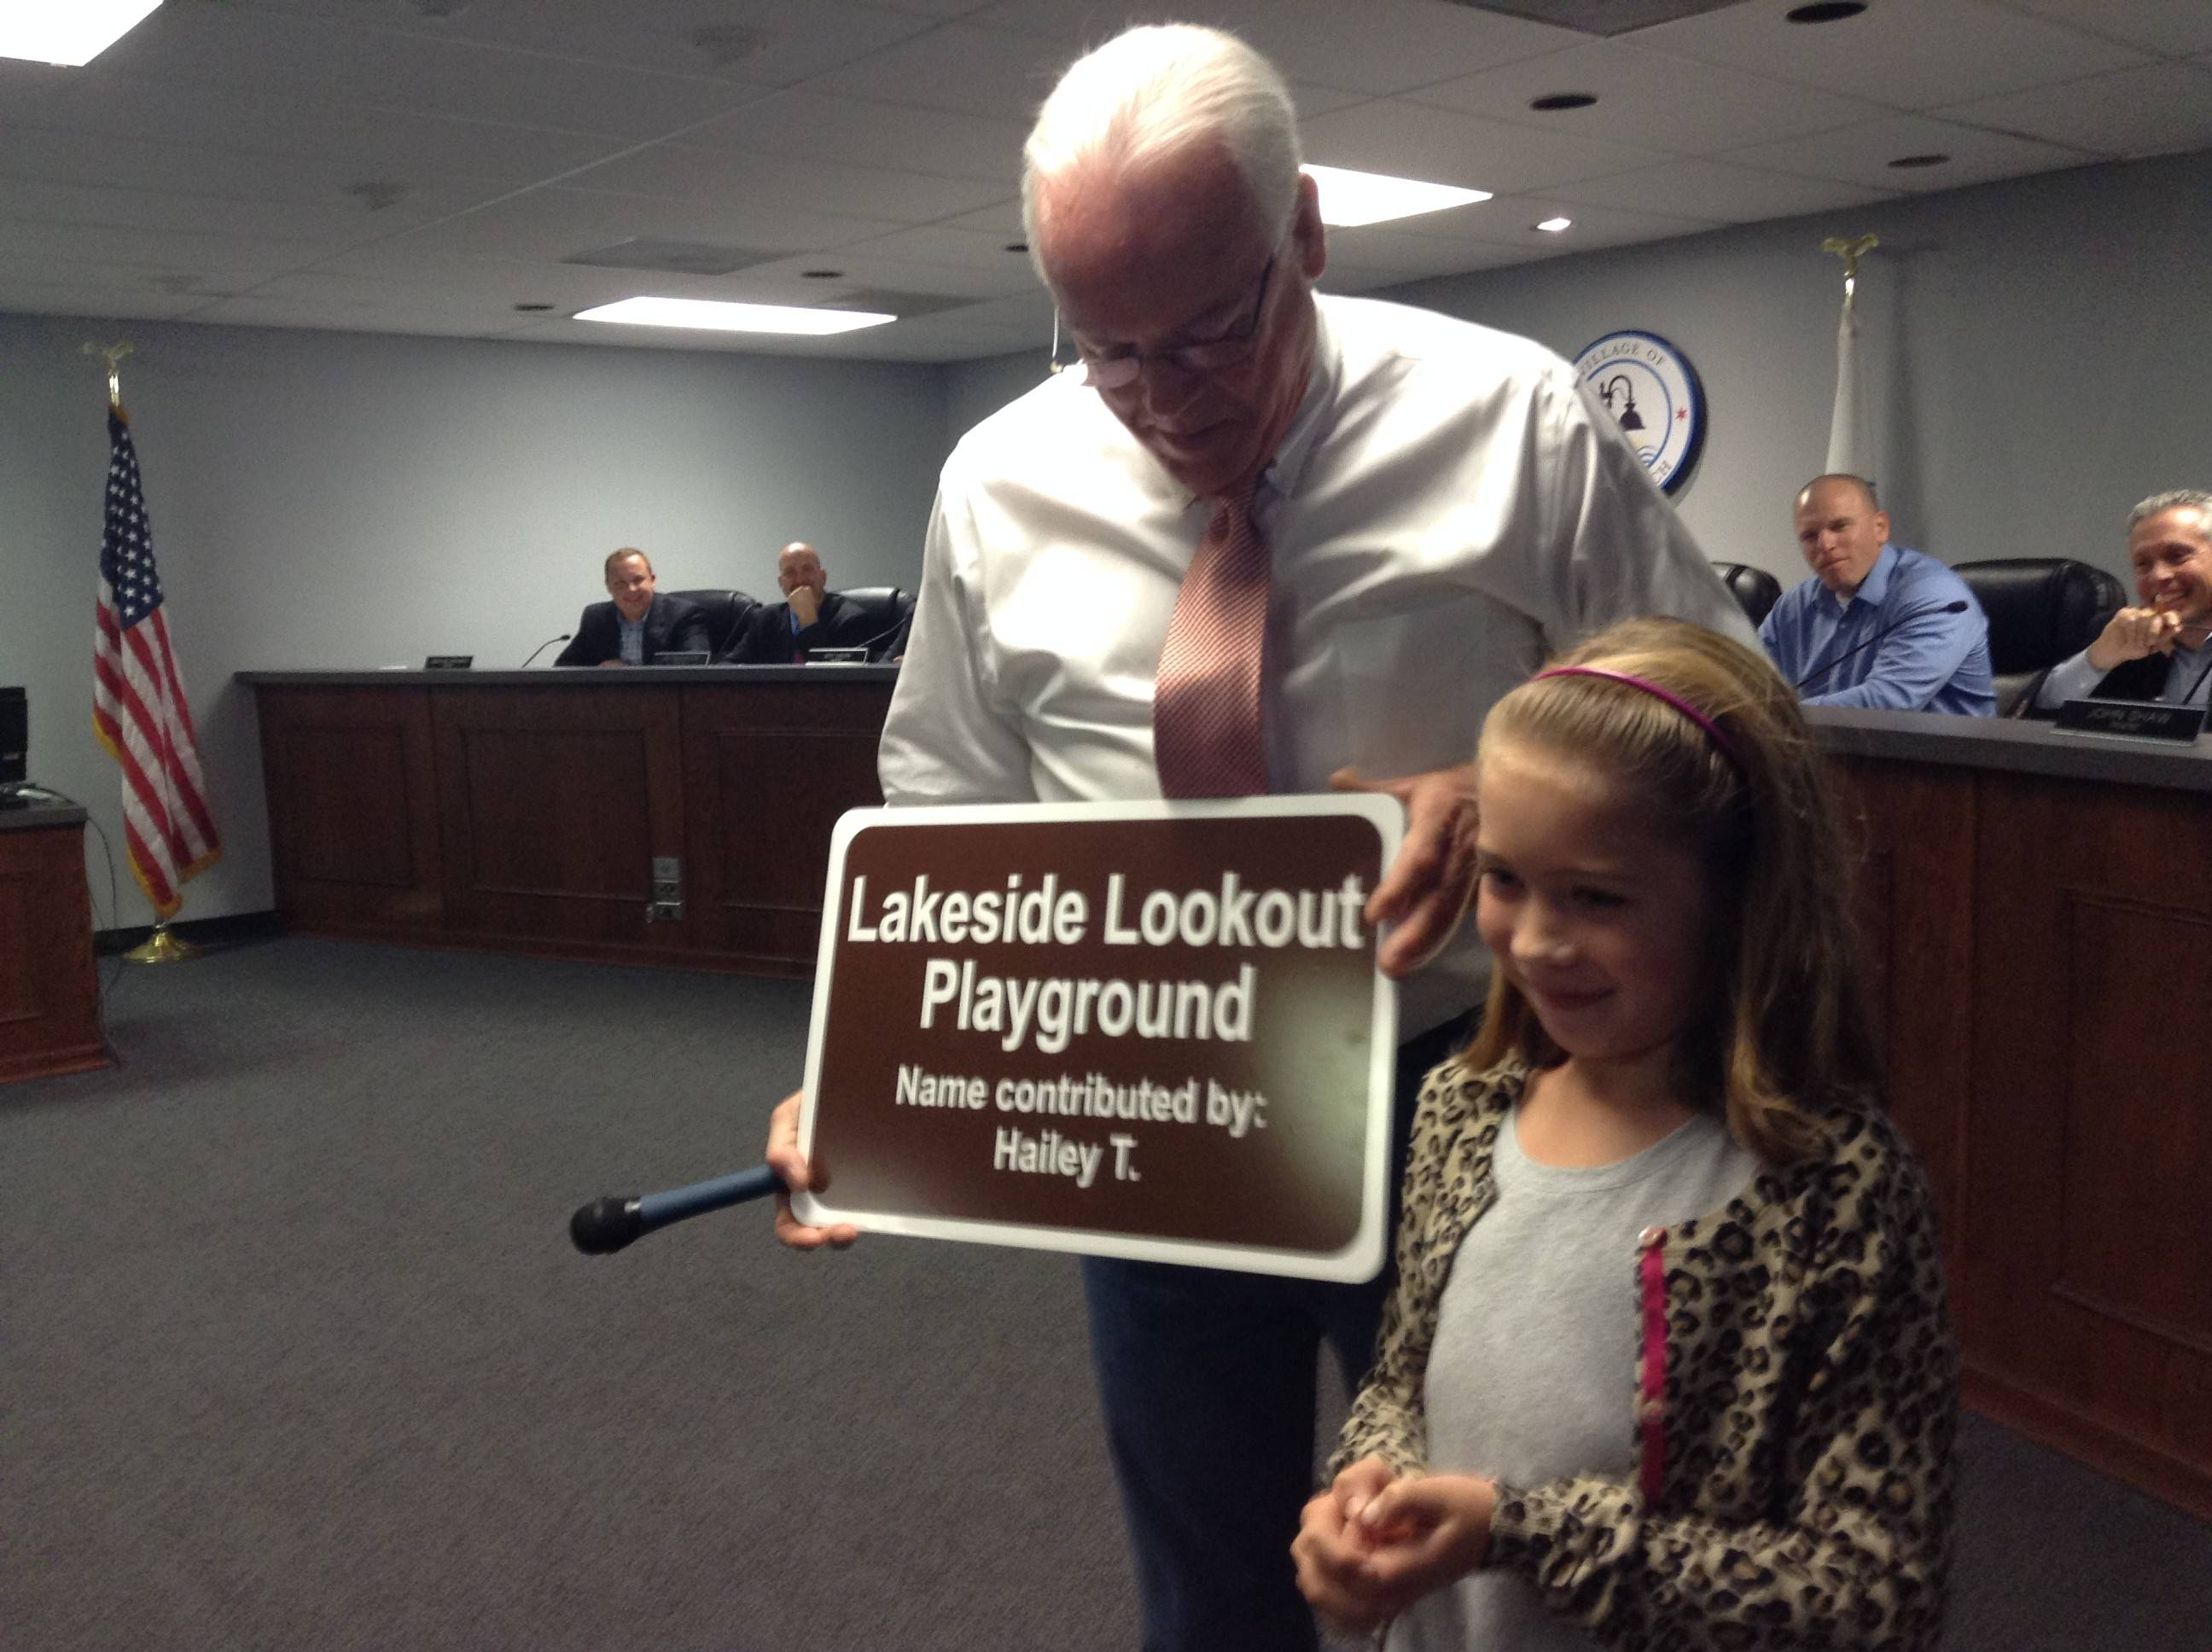 Lake Zurich mayor accepts donated sign naming new playground, gives flowers to girl in return